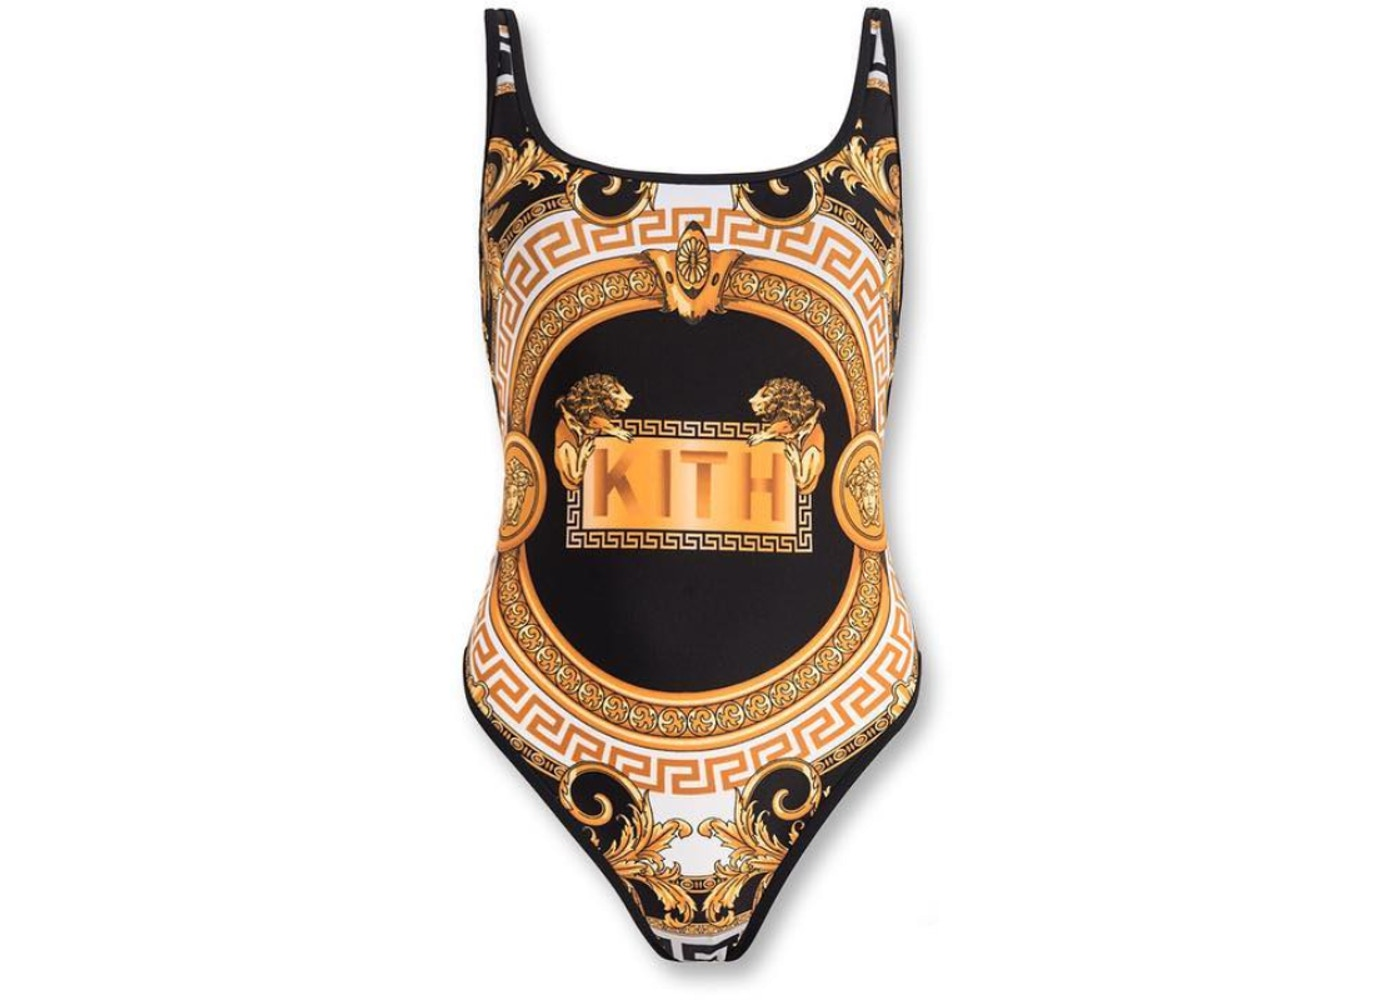 50eb79a300 Kith x Versace Women's One Piece Swimsuit Gold - SS19